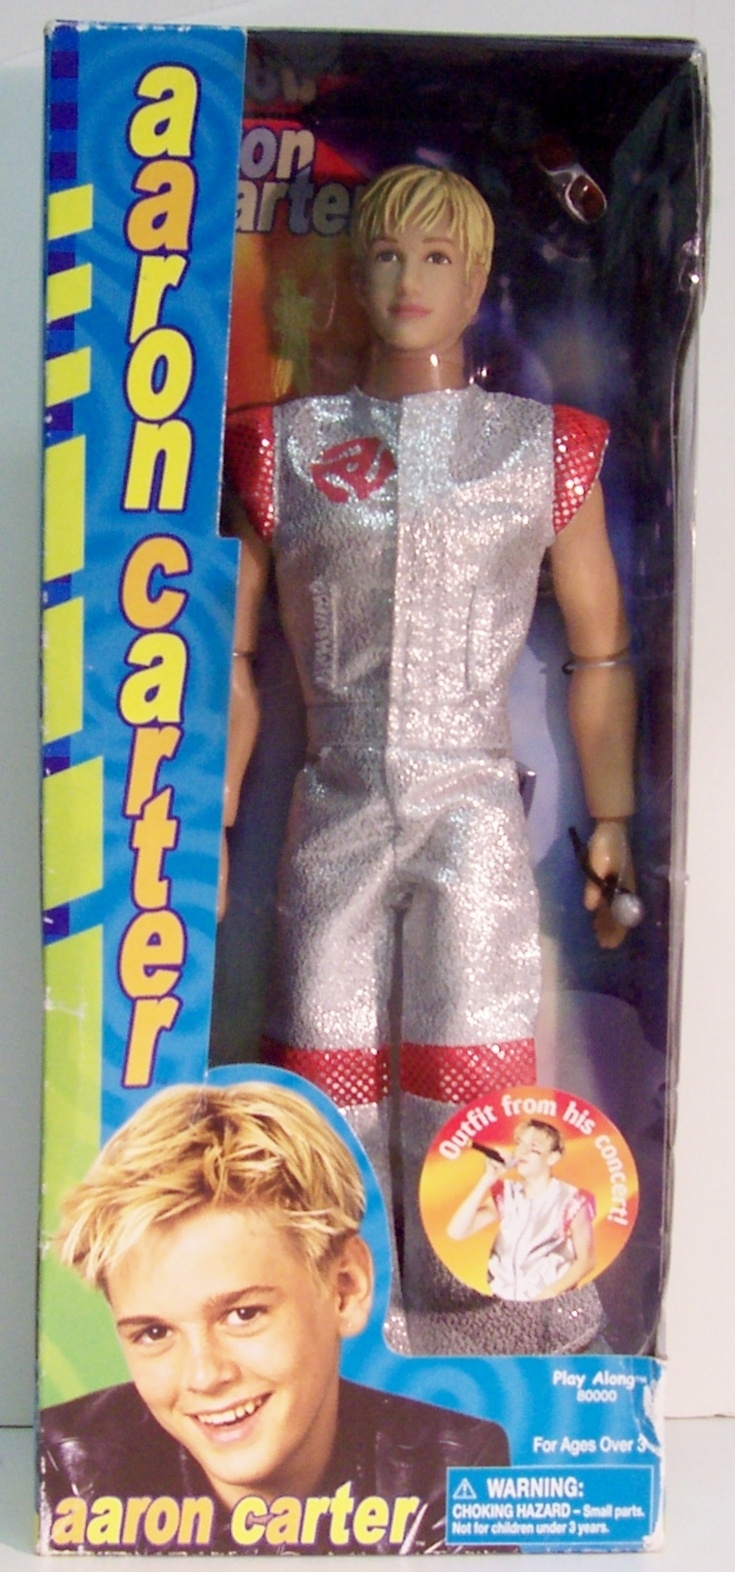 """@aarocarterAaron Carter 12"""" Doll by Play Along, 2001 I used to have this!!!"""